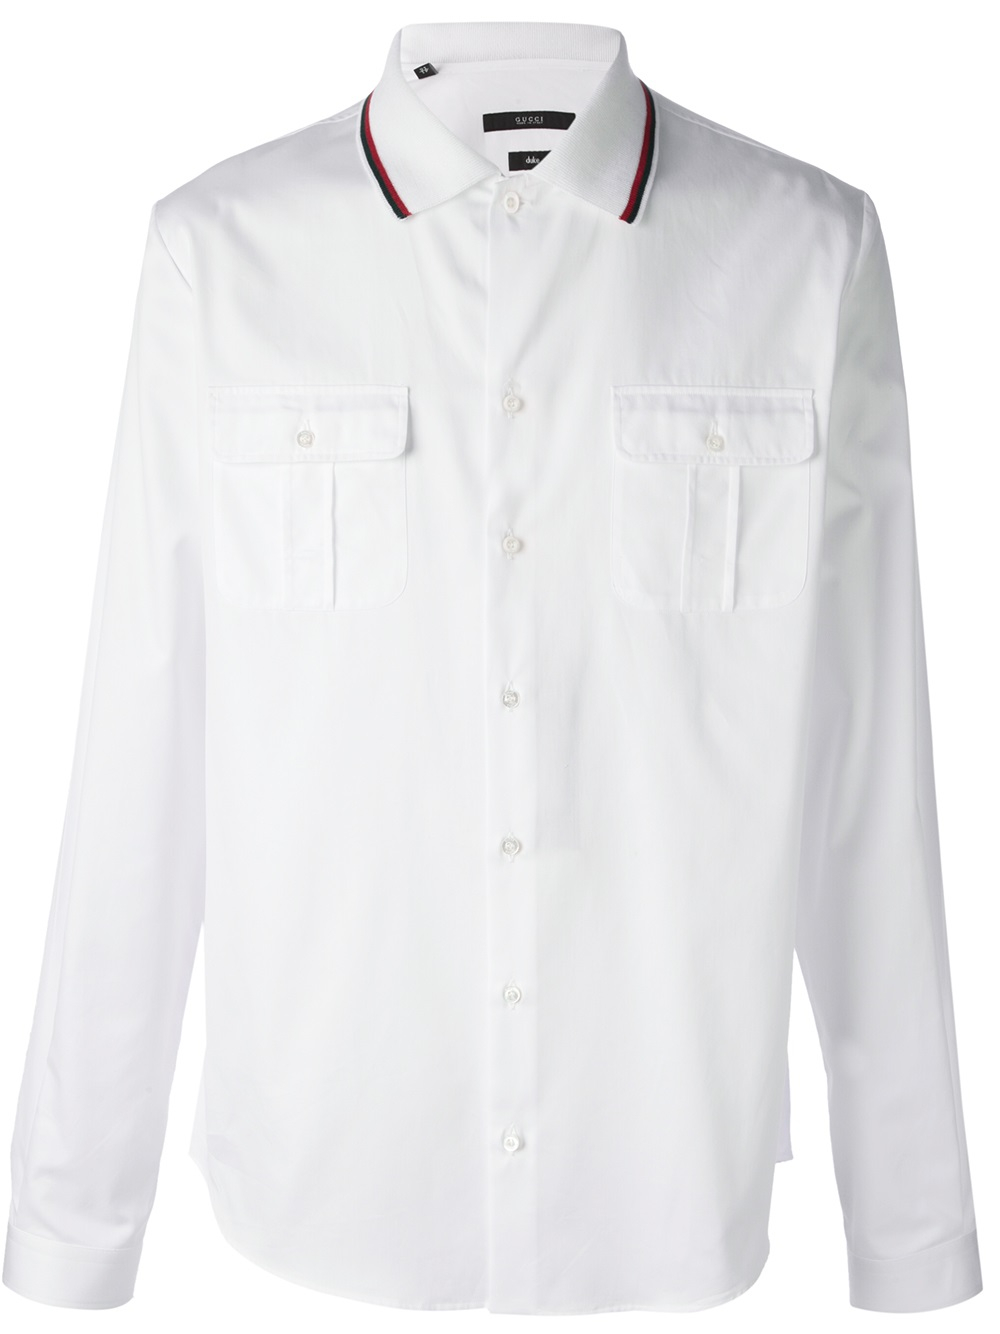 Gucci Collared Shirt In White For Men Lyst